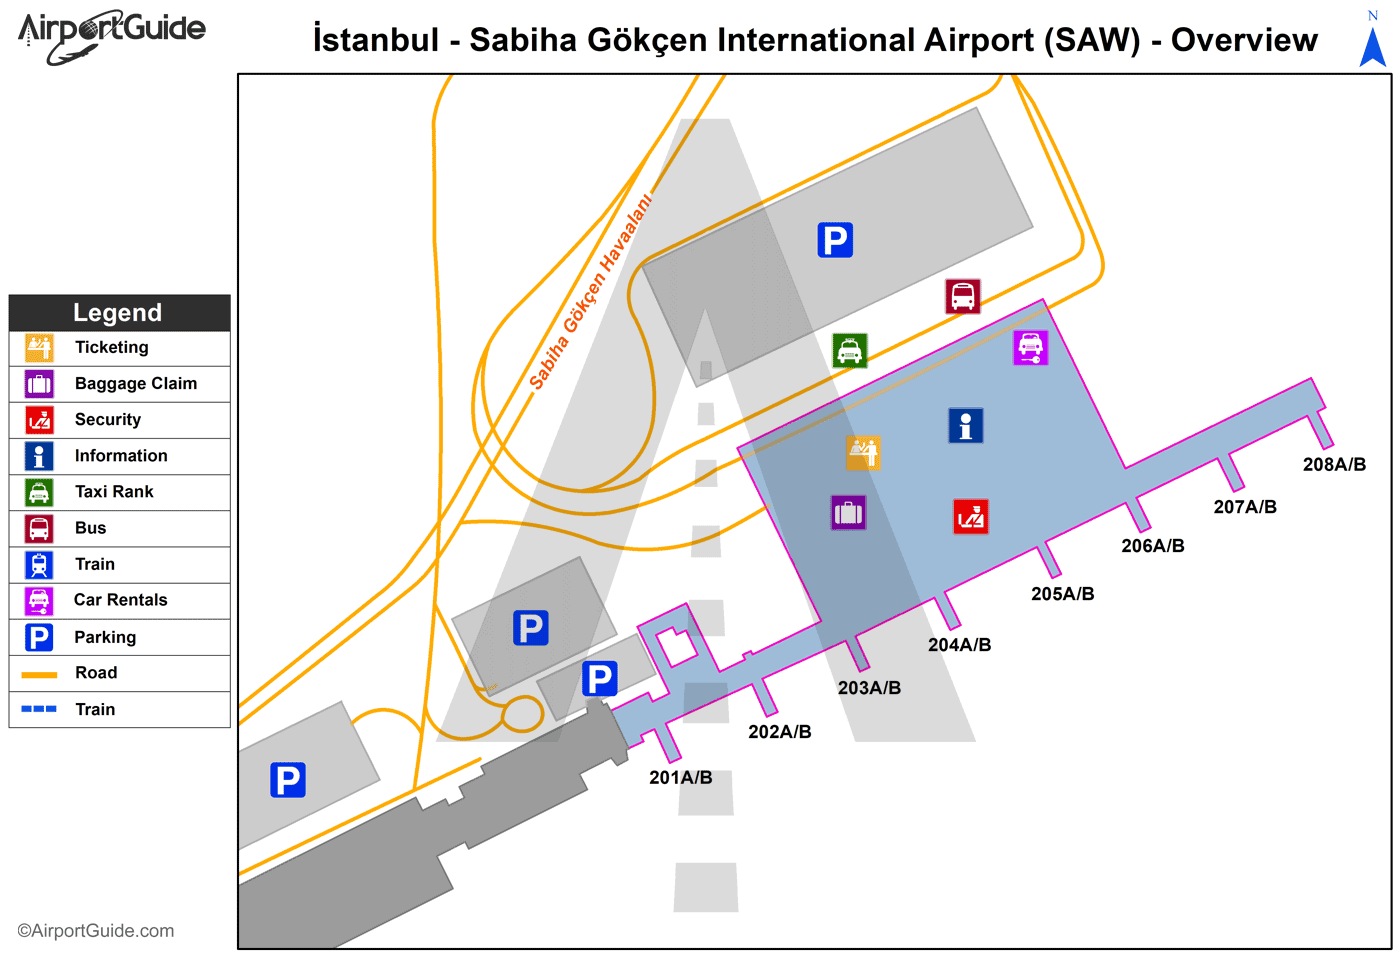 İstanbul - Sabiha Gökçen International (SAW) Airport Terminal Map - Overview